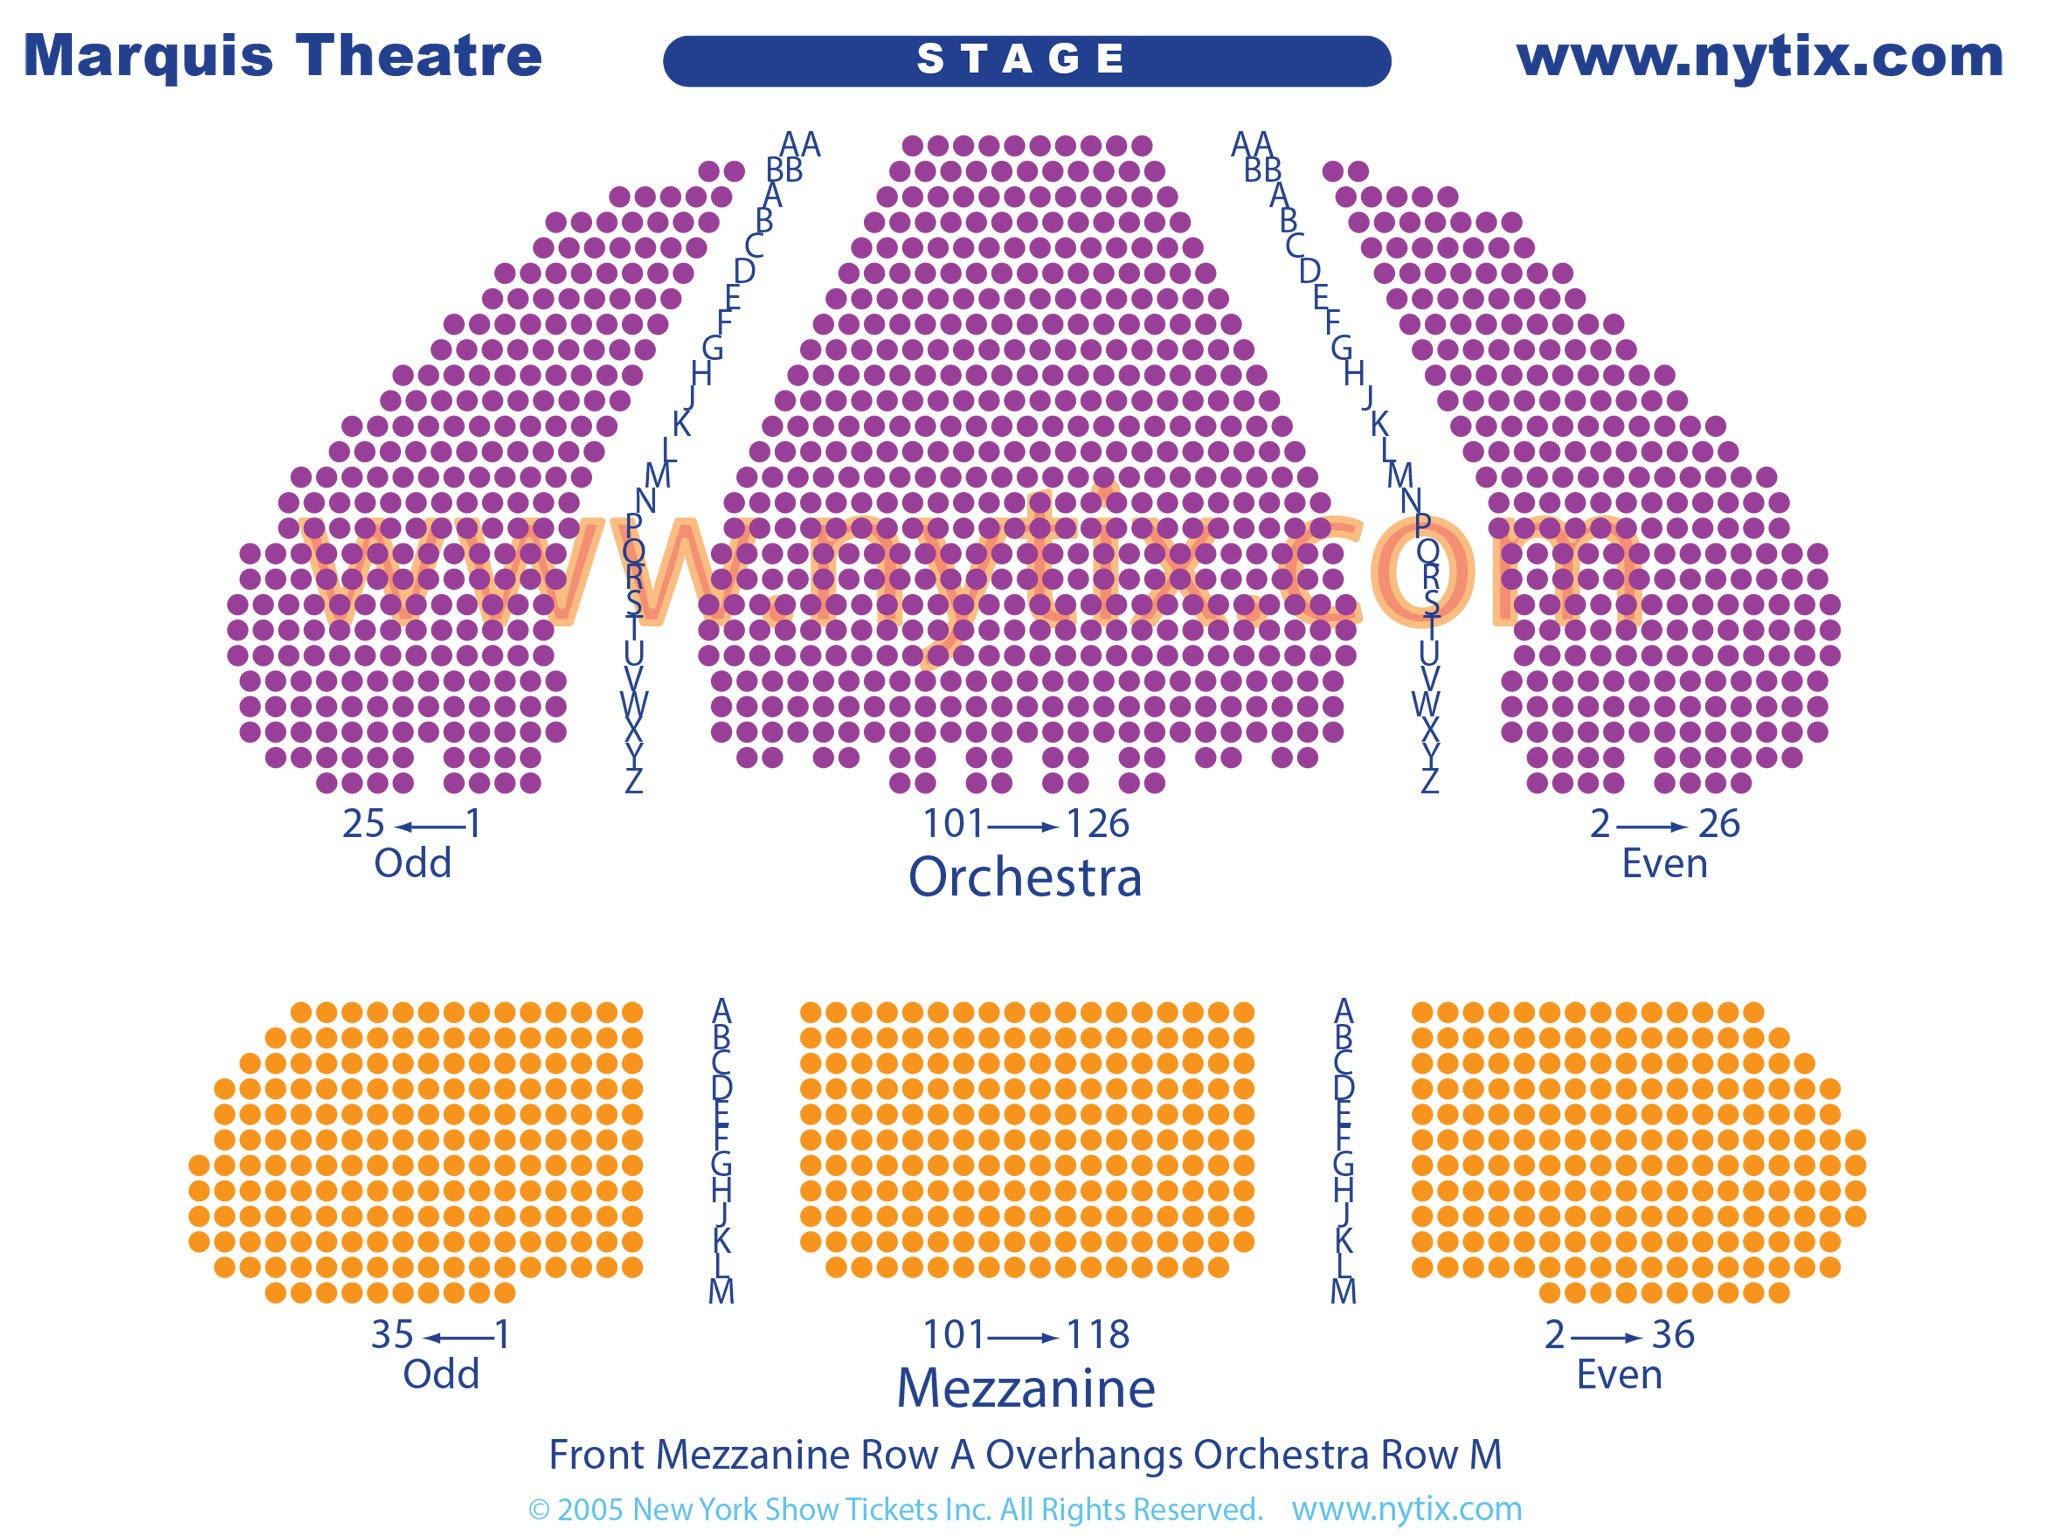 Broadway Theatre Marquis Seating Chart